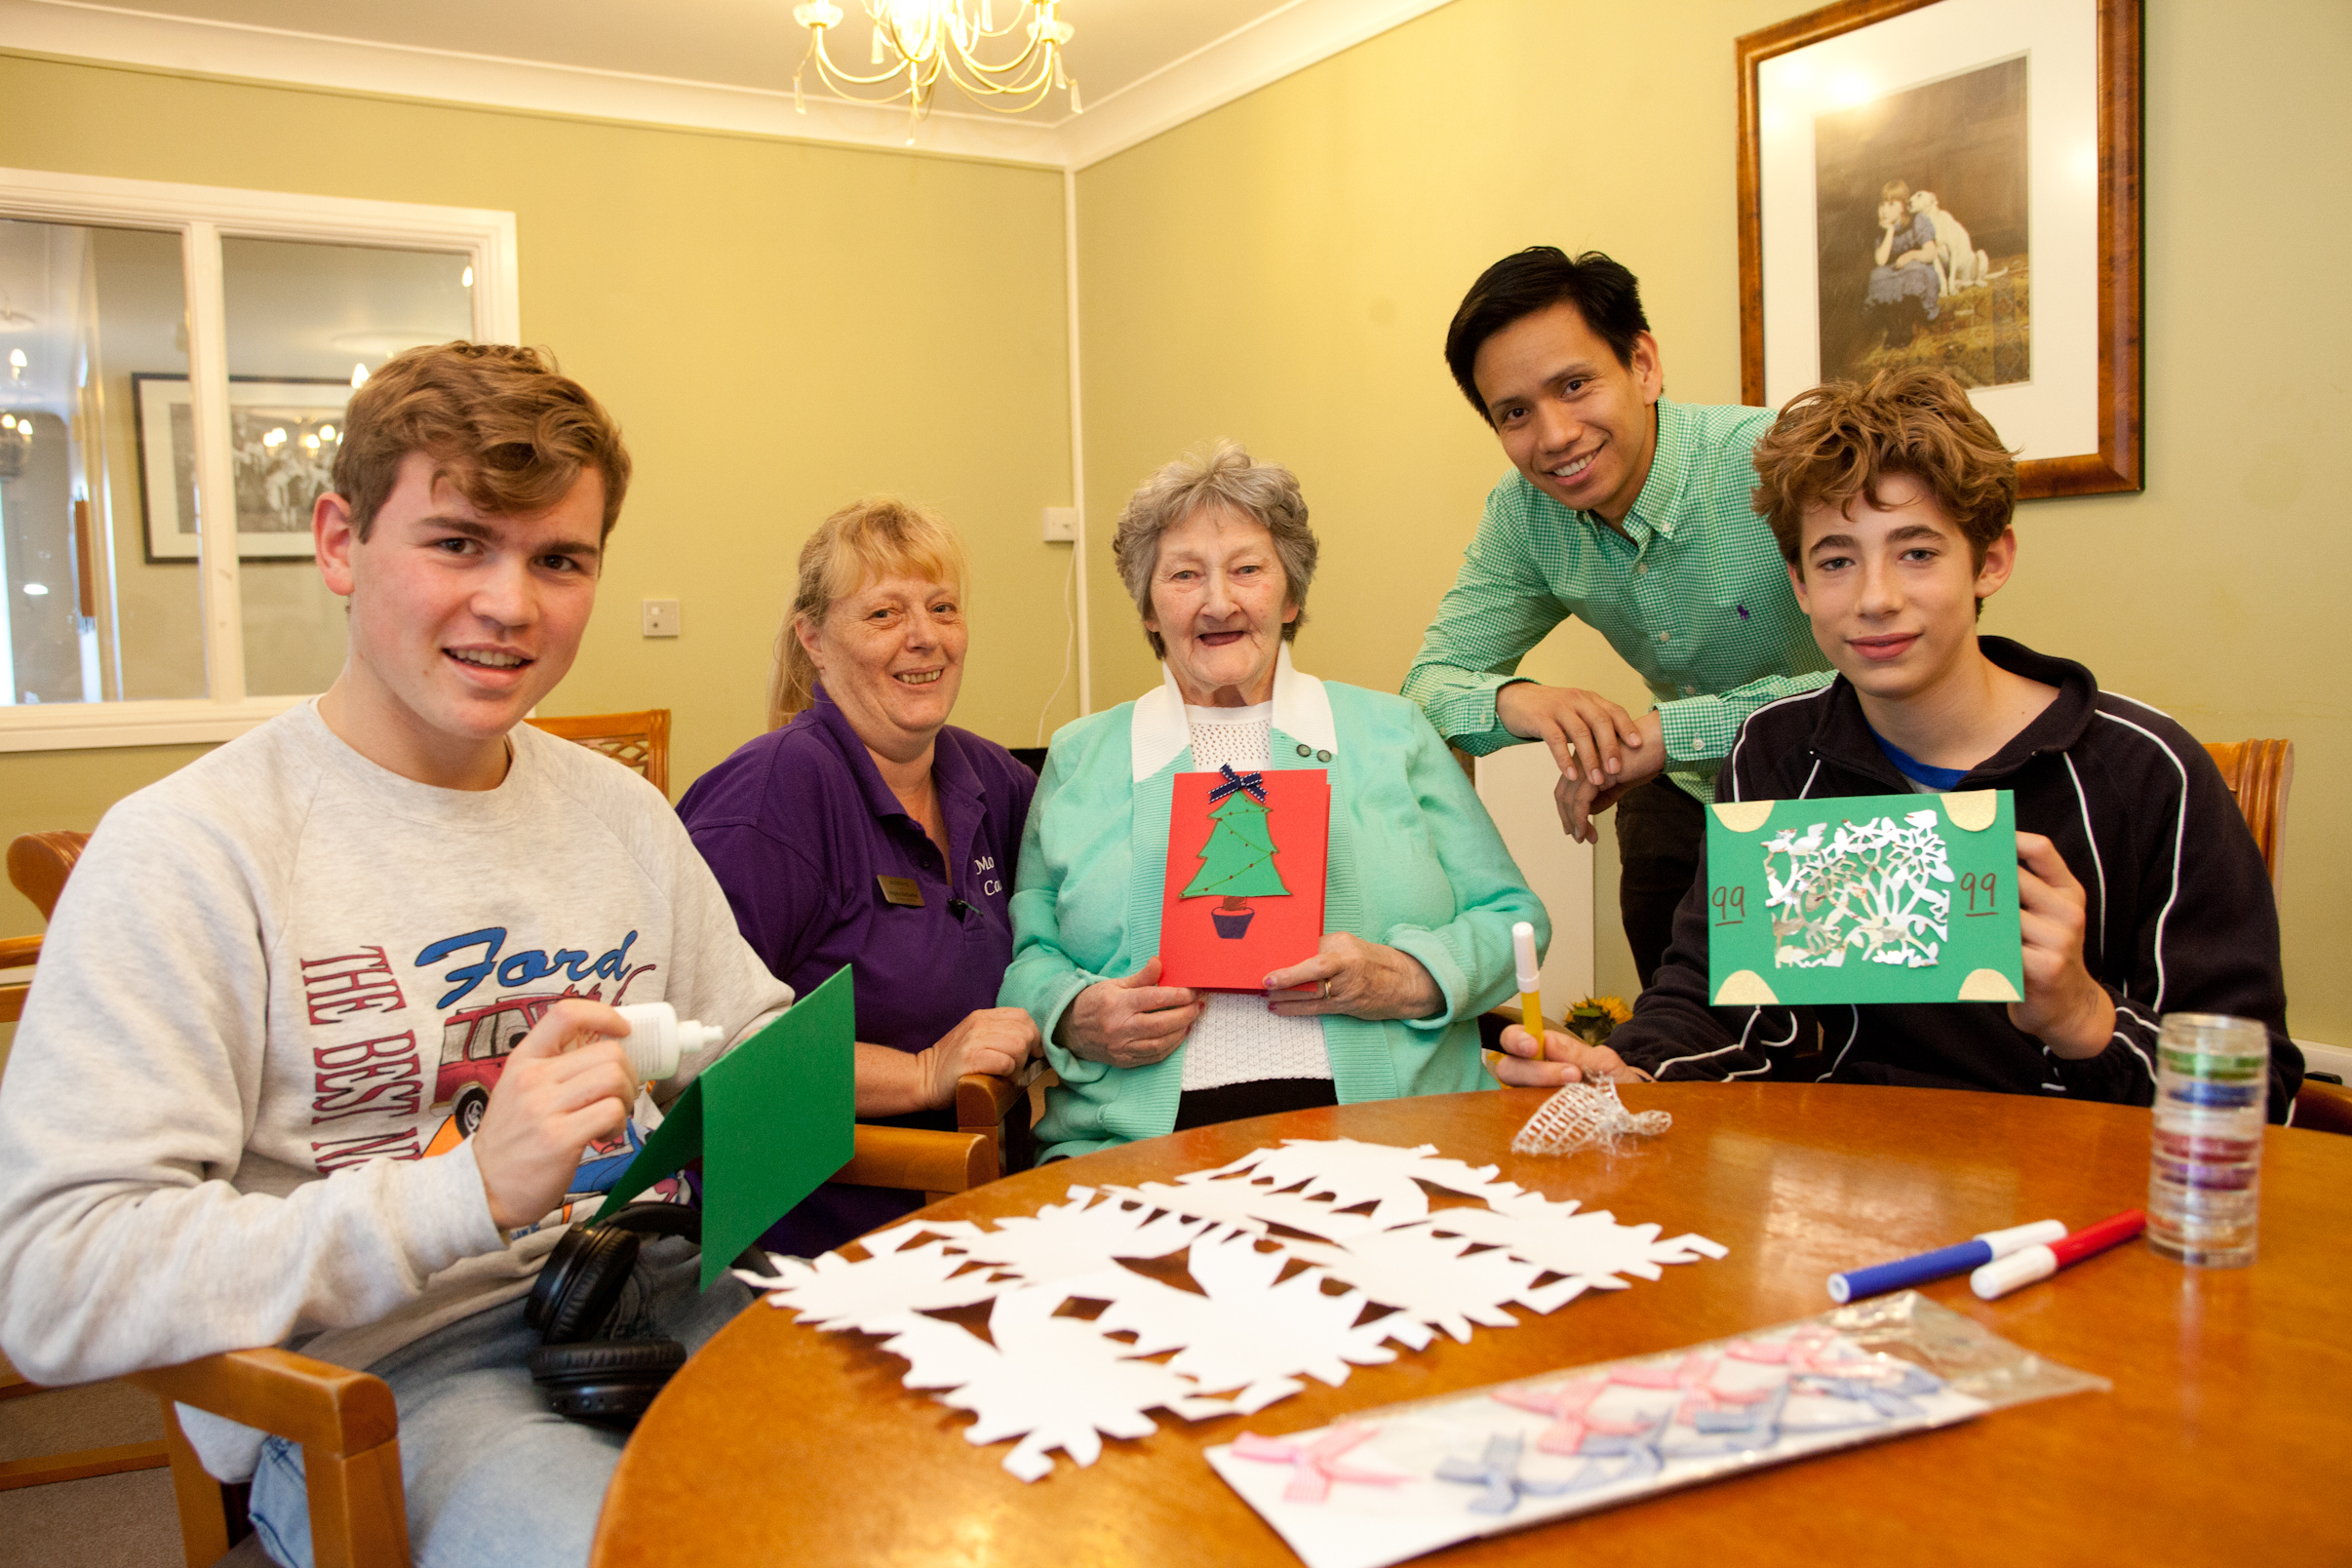 Care home tunes into the health benefits of music and art